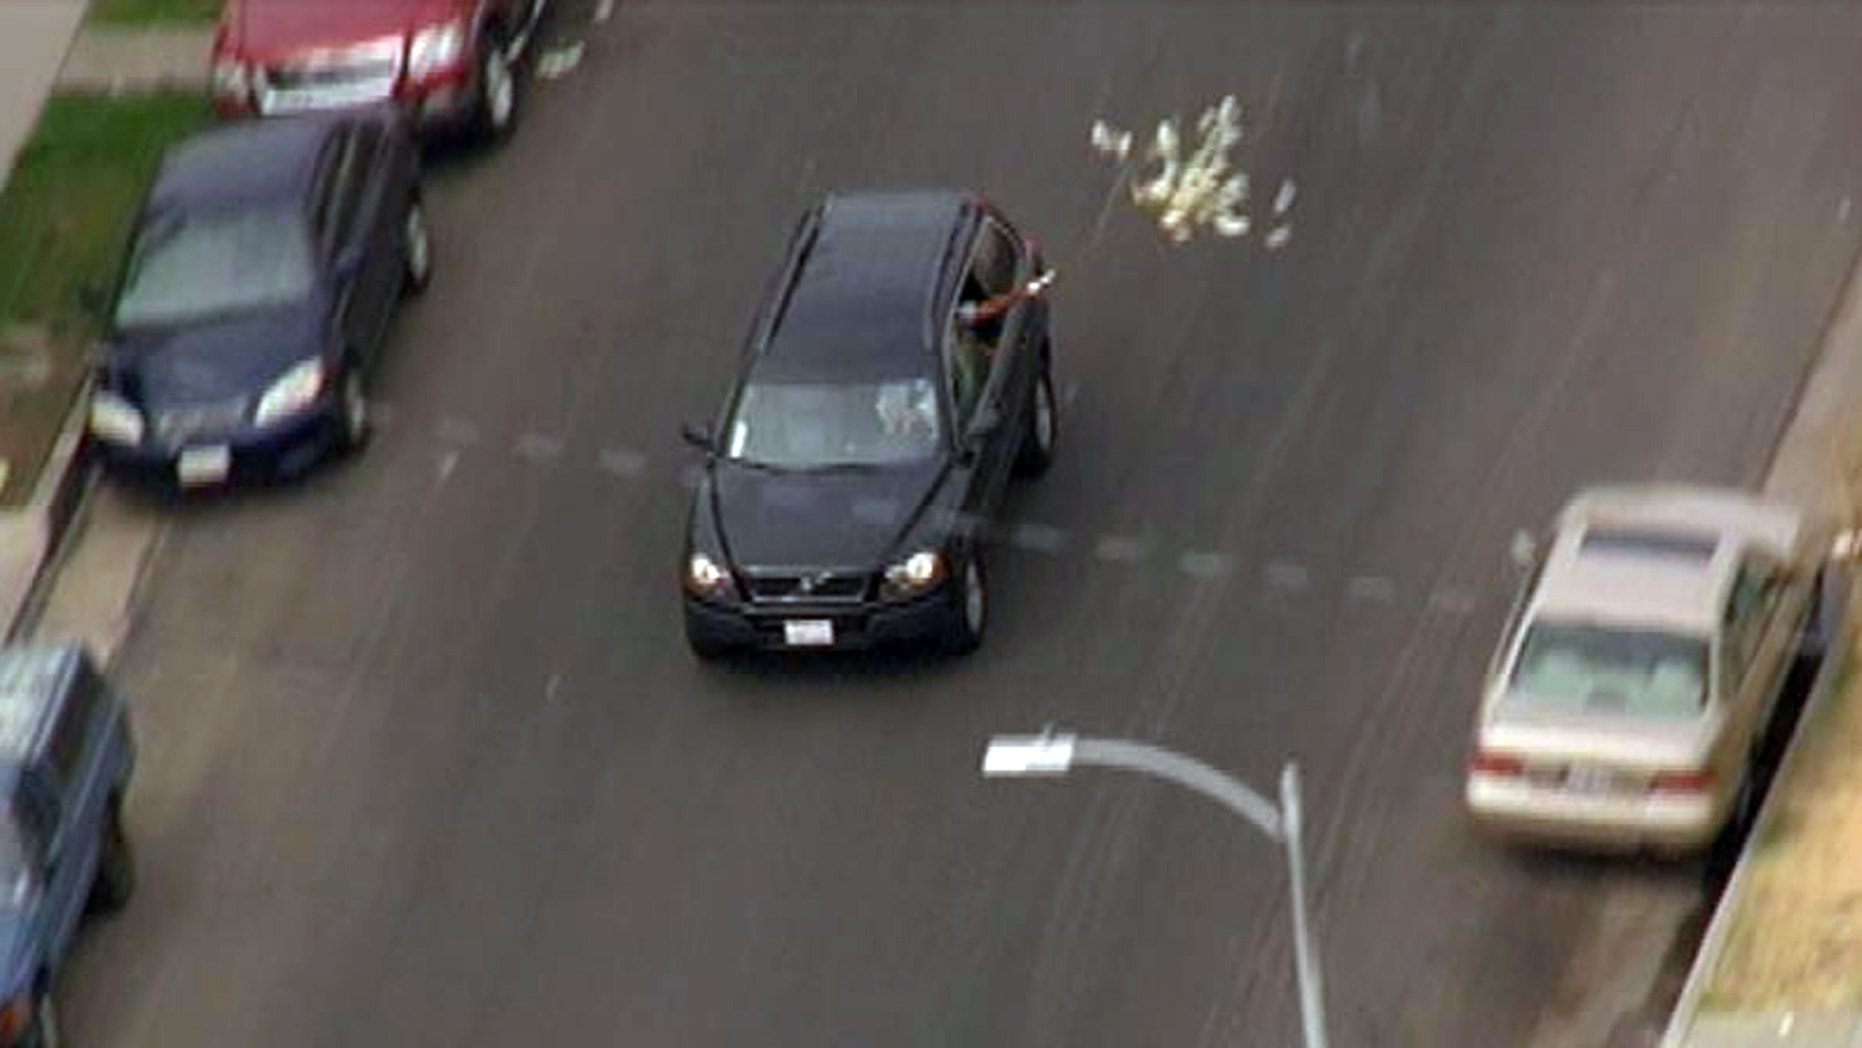 Sept. 12, 2012: Bank robbery suspects throw money from their vehicle during a police pursuit.